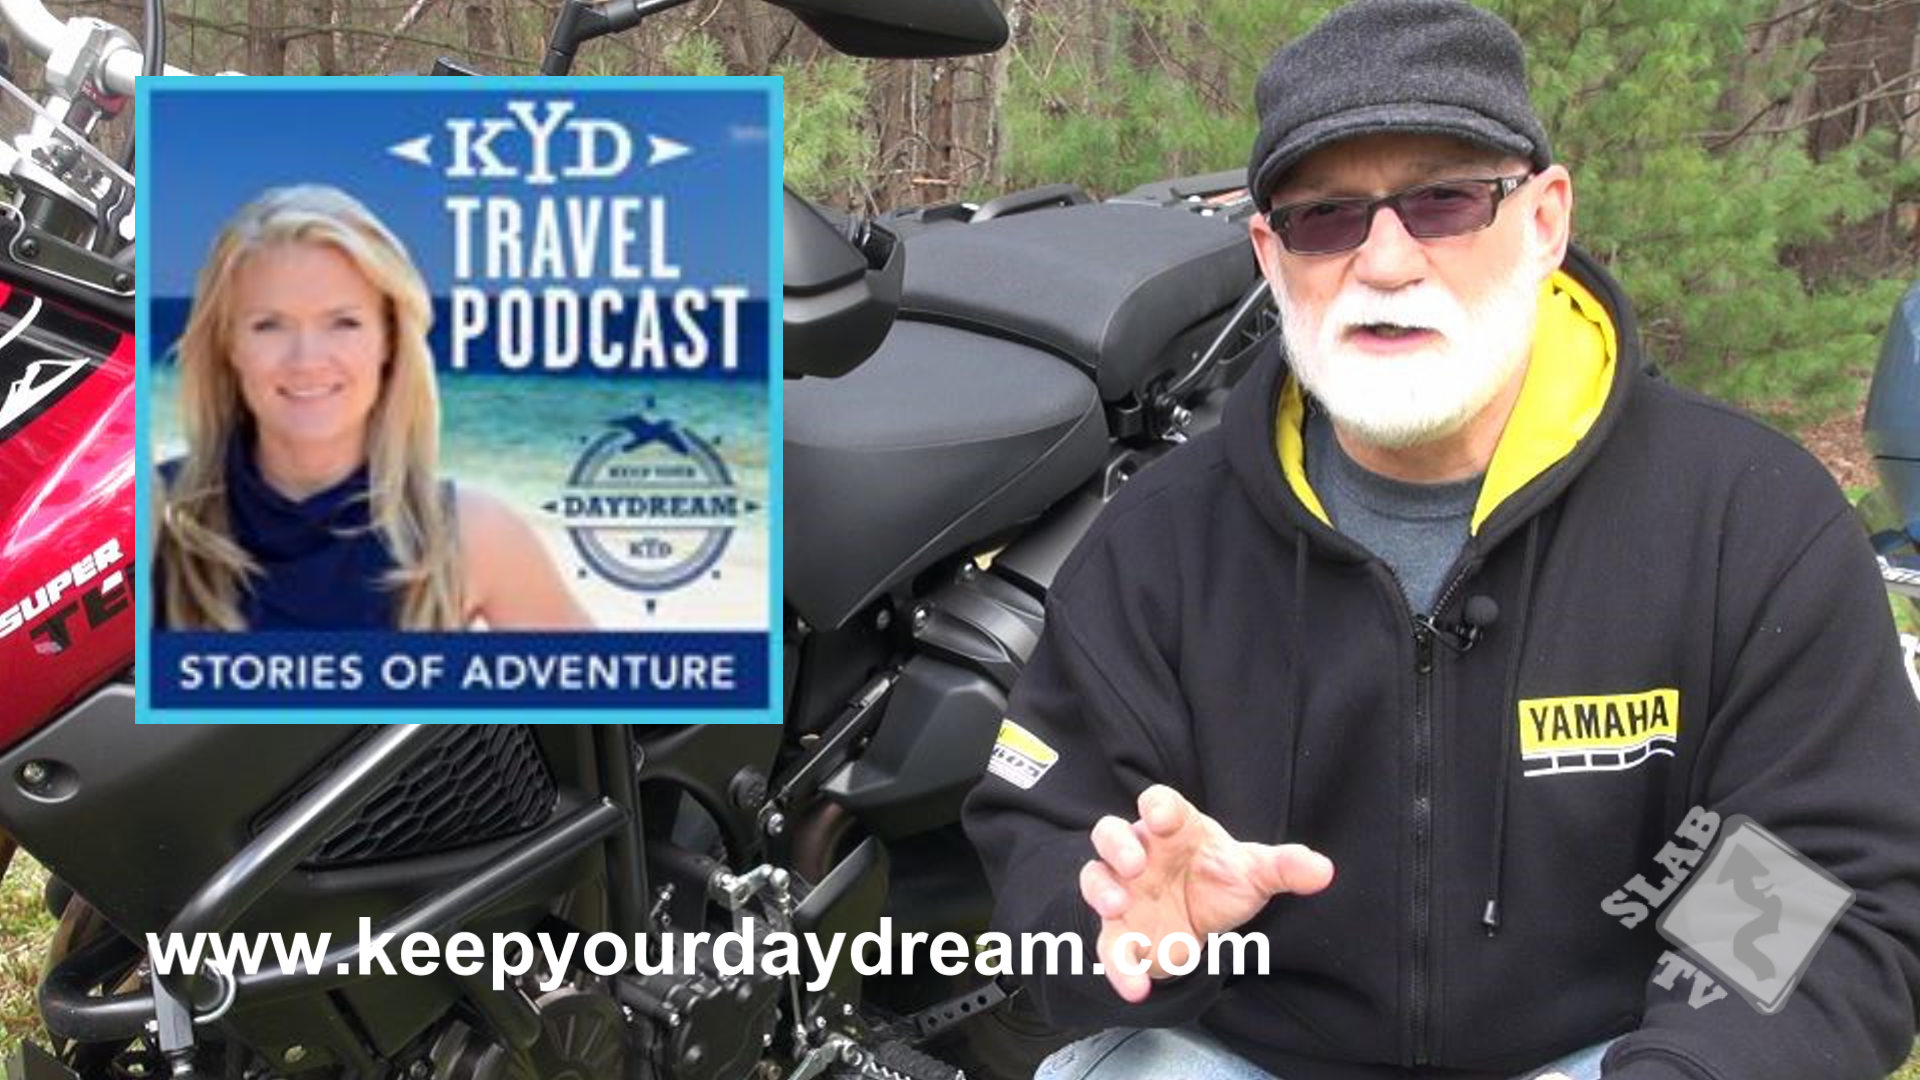 Achieving Your Touring Dreams and Goals